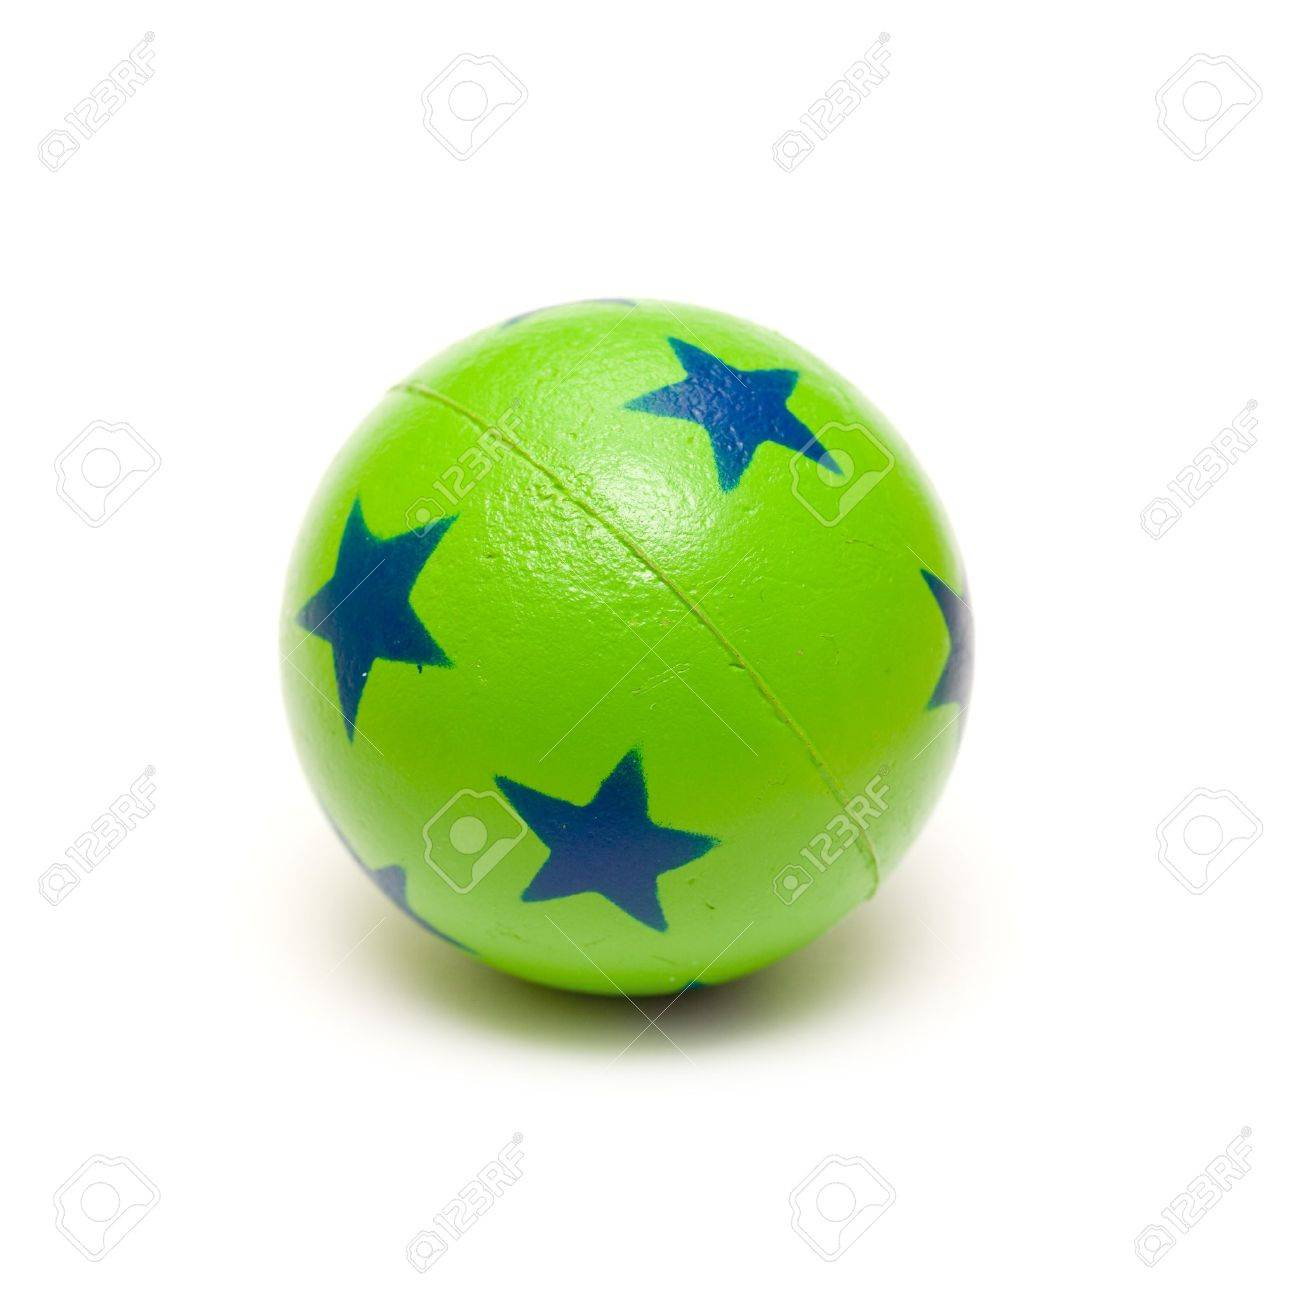 Green Bouncy Ball Stock Photo, Picture And Royalty Free Image ...